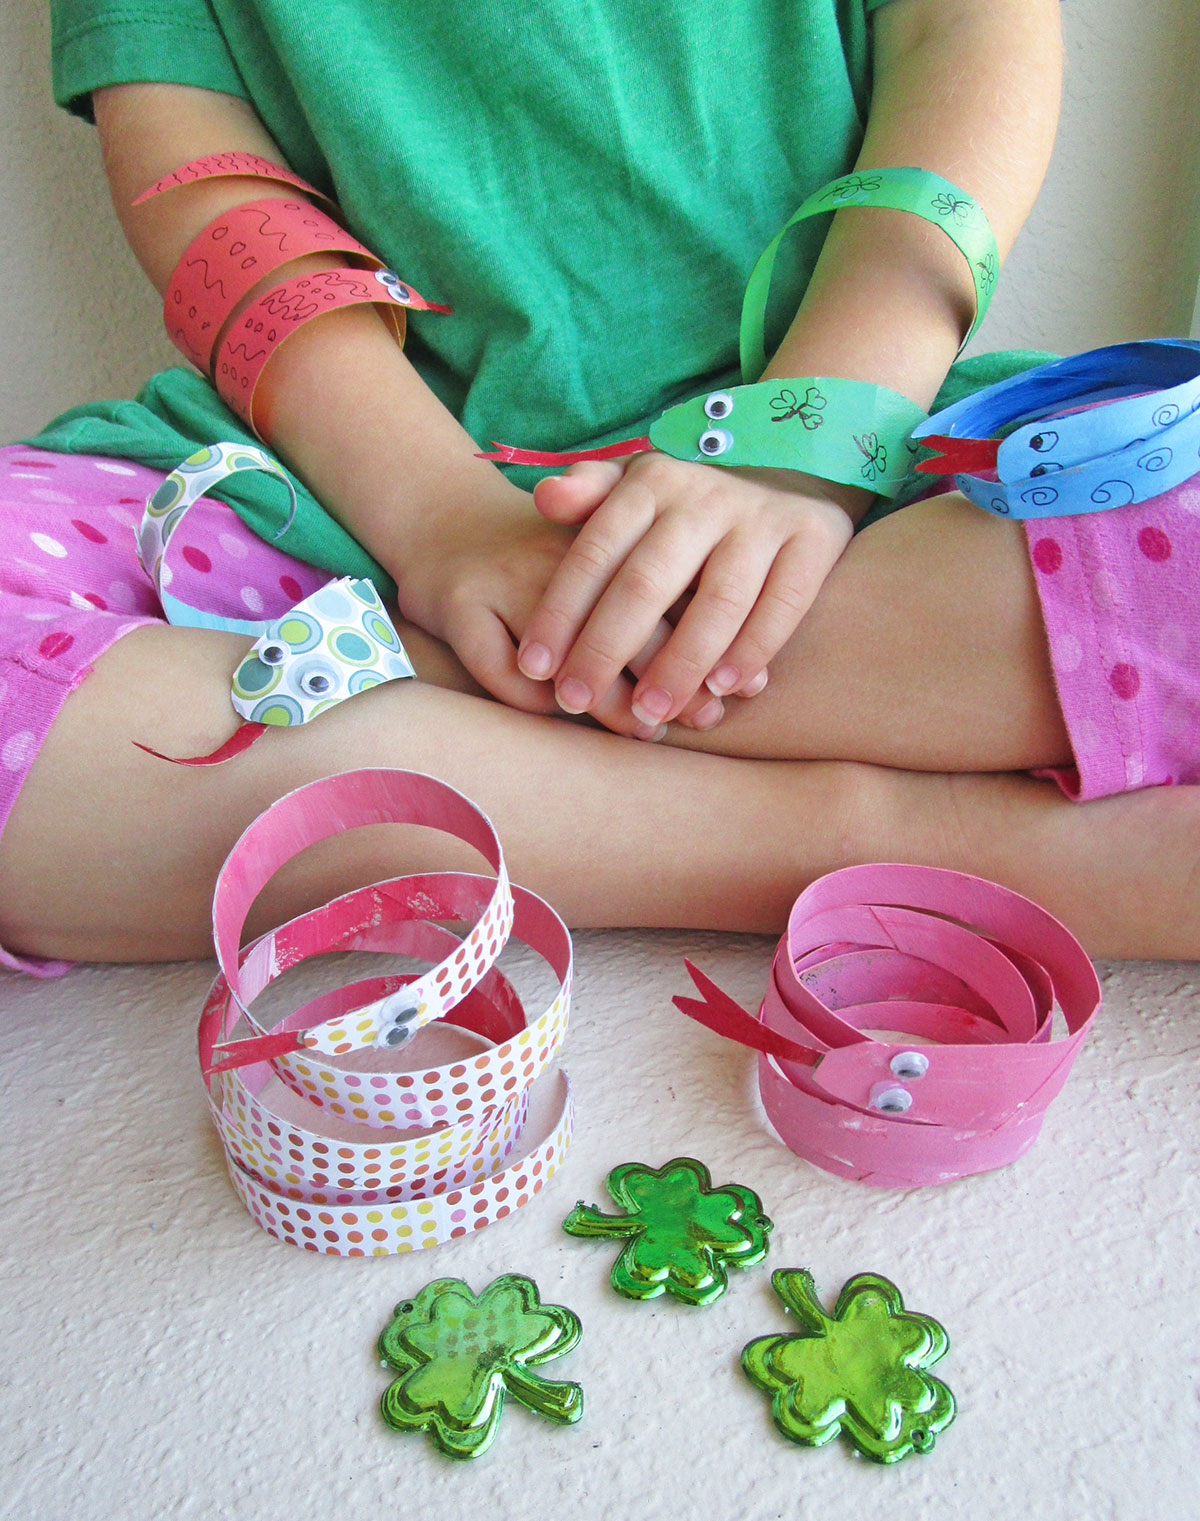 Little Passports Blog St. Patrick's Day Snake Craft Girl with Completed Snakes